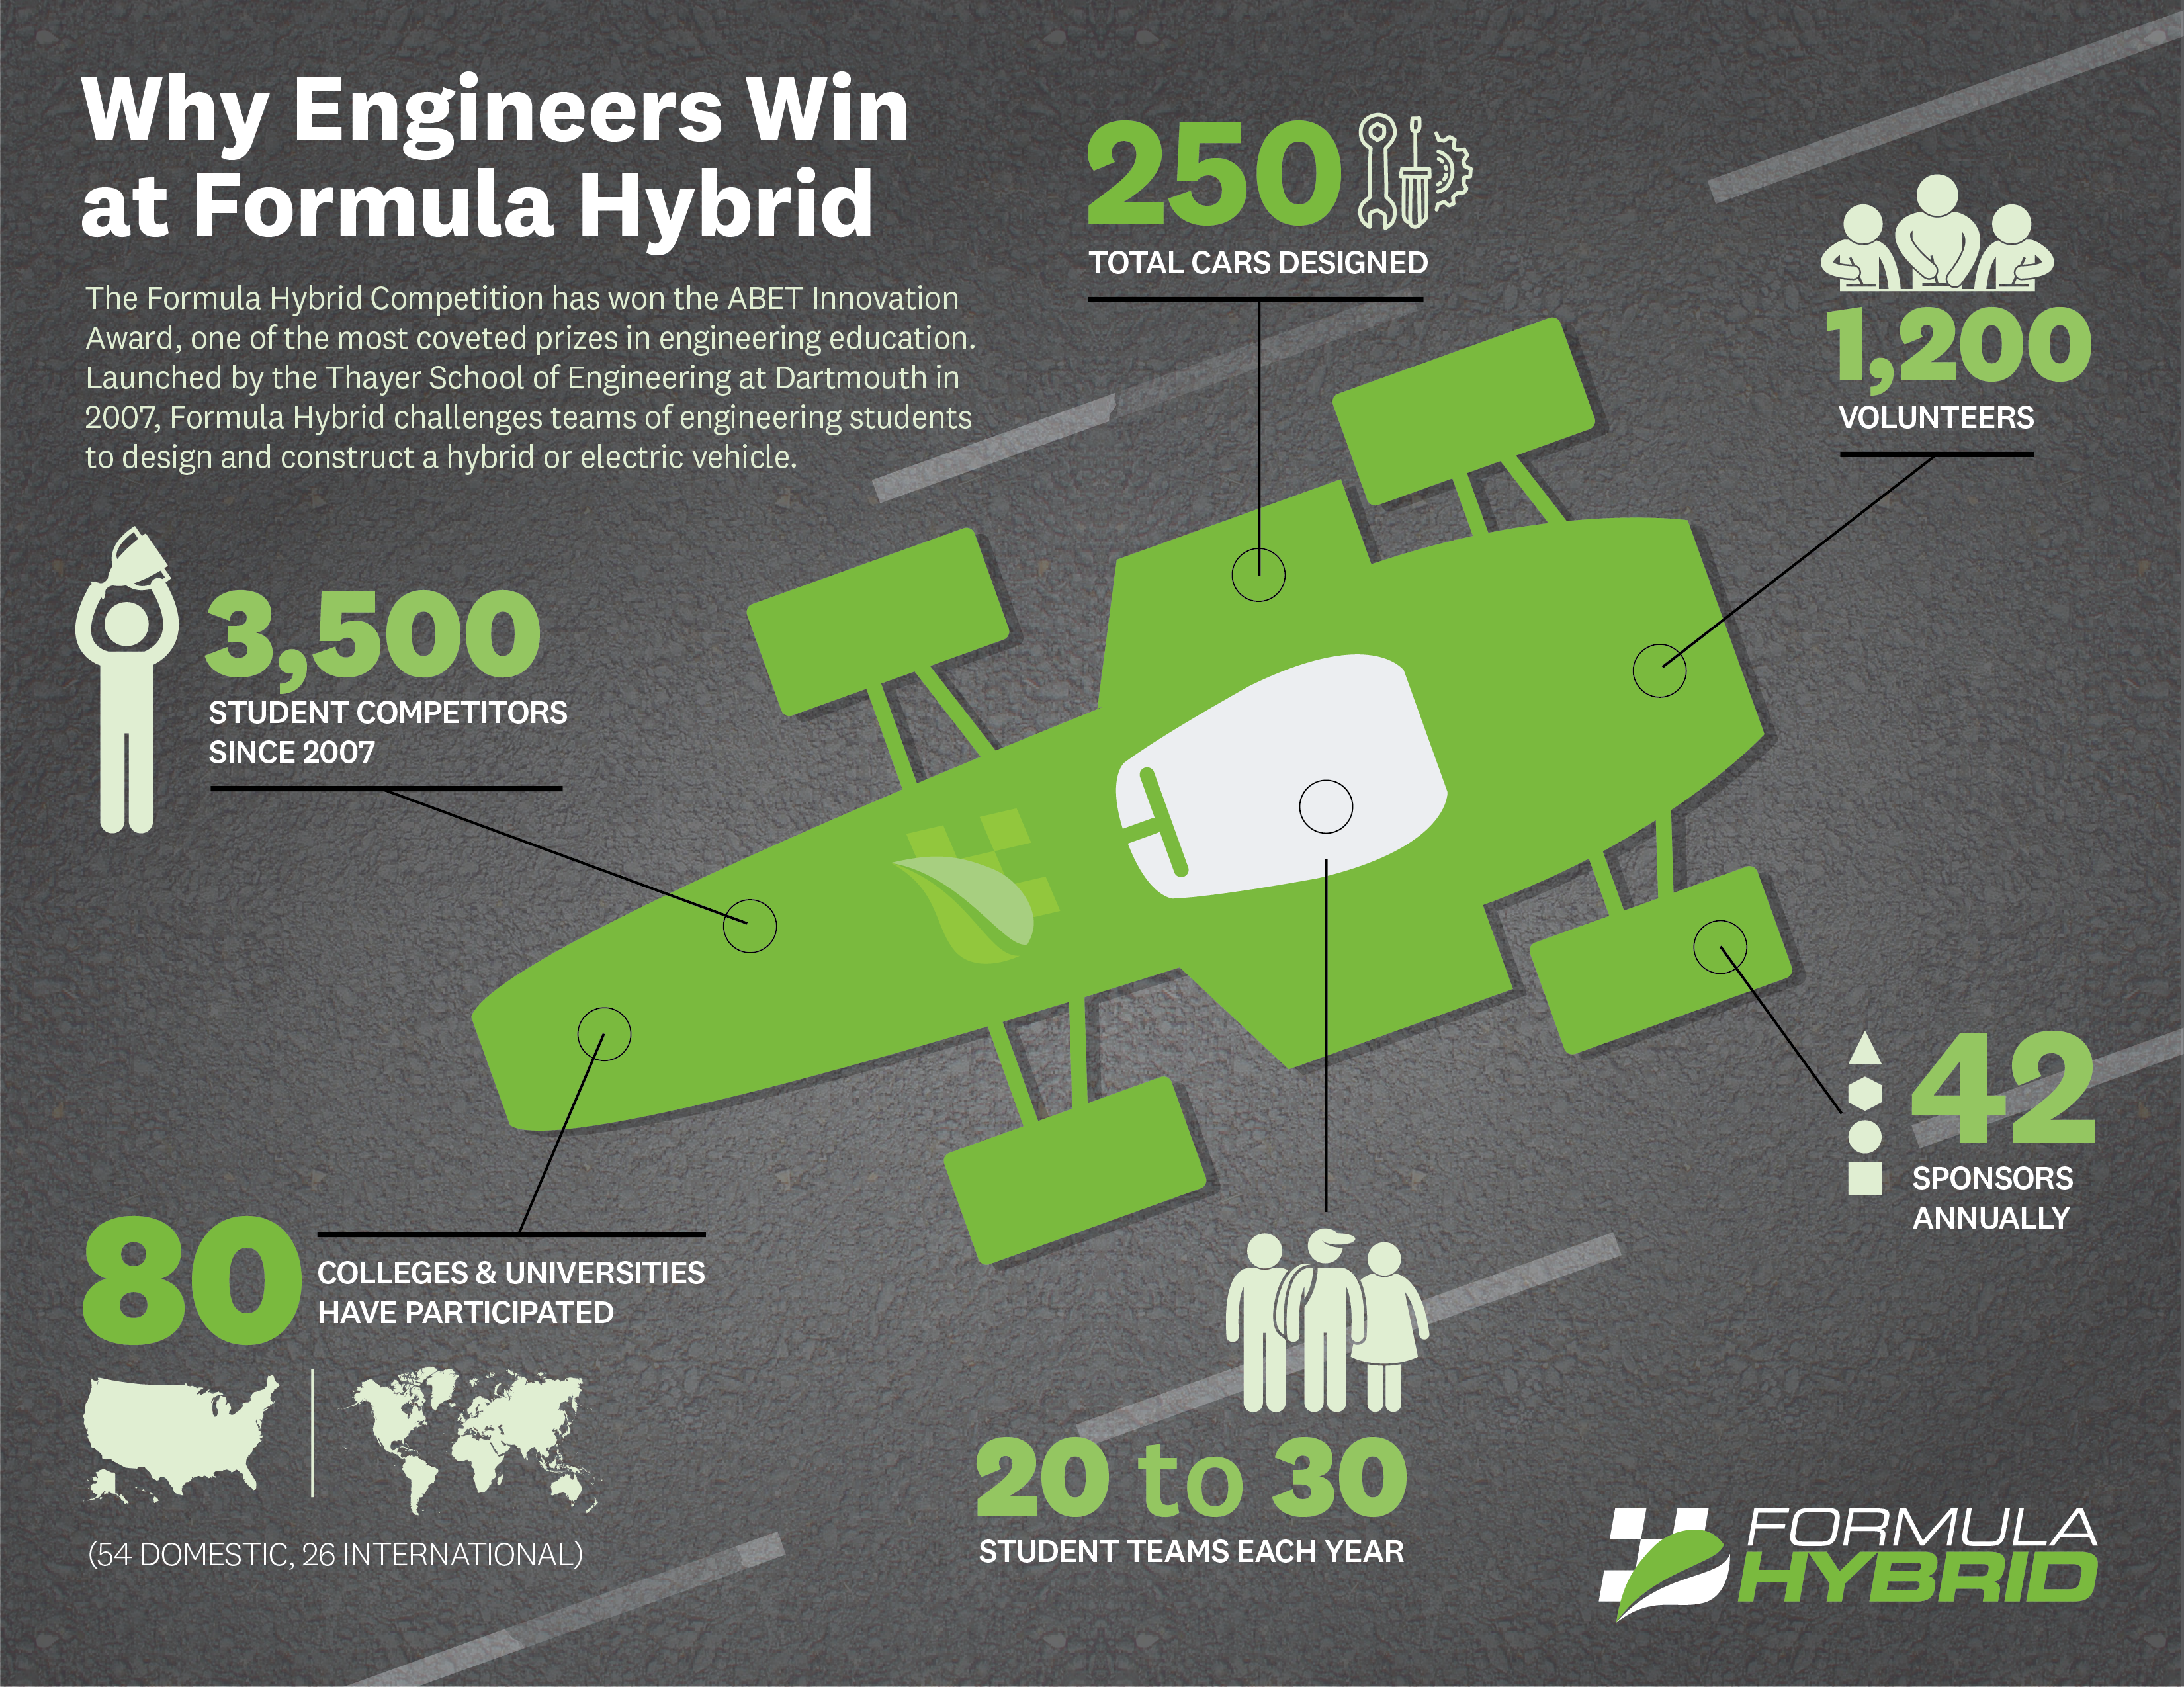 Why Engineers Win at Formula Hybrid